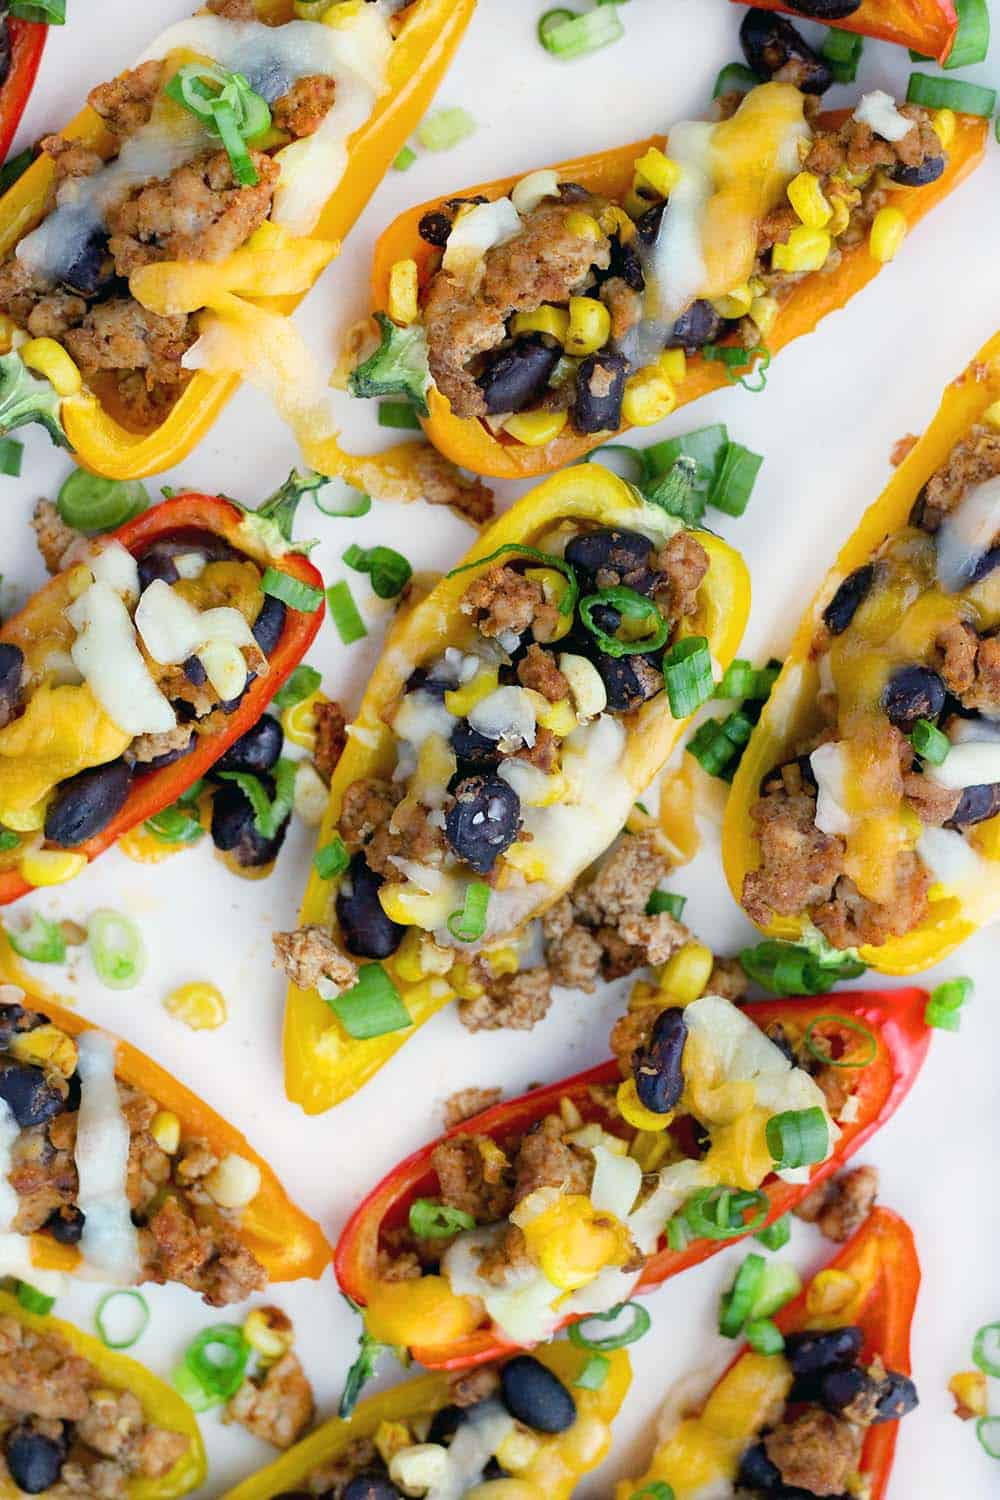 These Taco Stuffed Mini Peppers are the perfect appetizer or light meal! The sweet mini peppers are filled with slightly spicy, taco flavored ground turkey, black beans, and corn for a super fun, low-carb finger food.